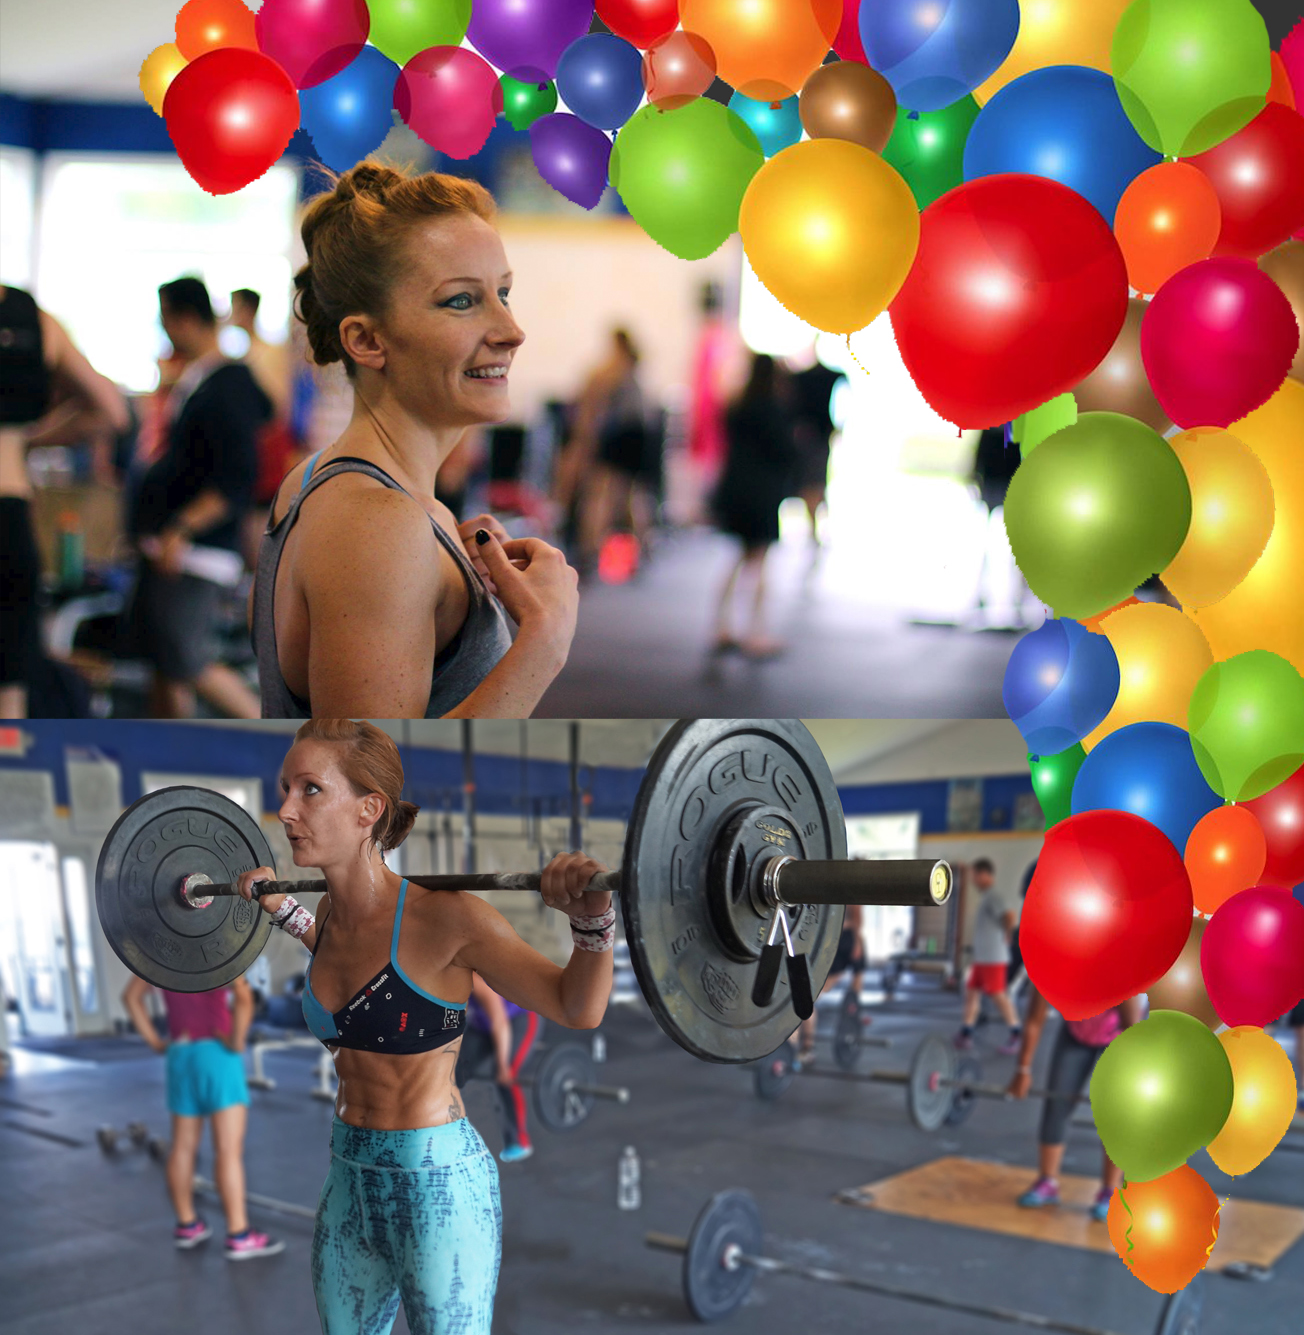 What a fun day for a Birthday! Here's to our own, Gabby Washburn, the Director of PVCF's Billing, and a phenomenal athlete, friend, and workout cheerleader!